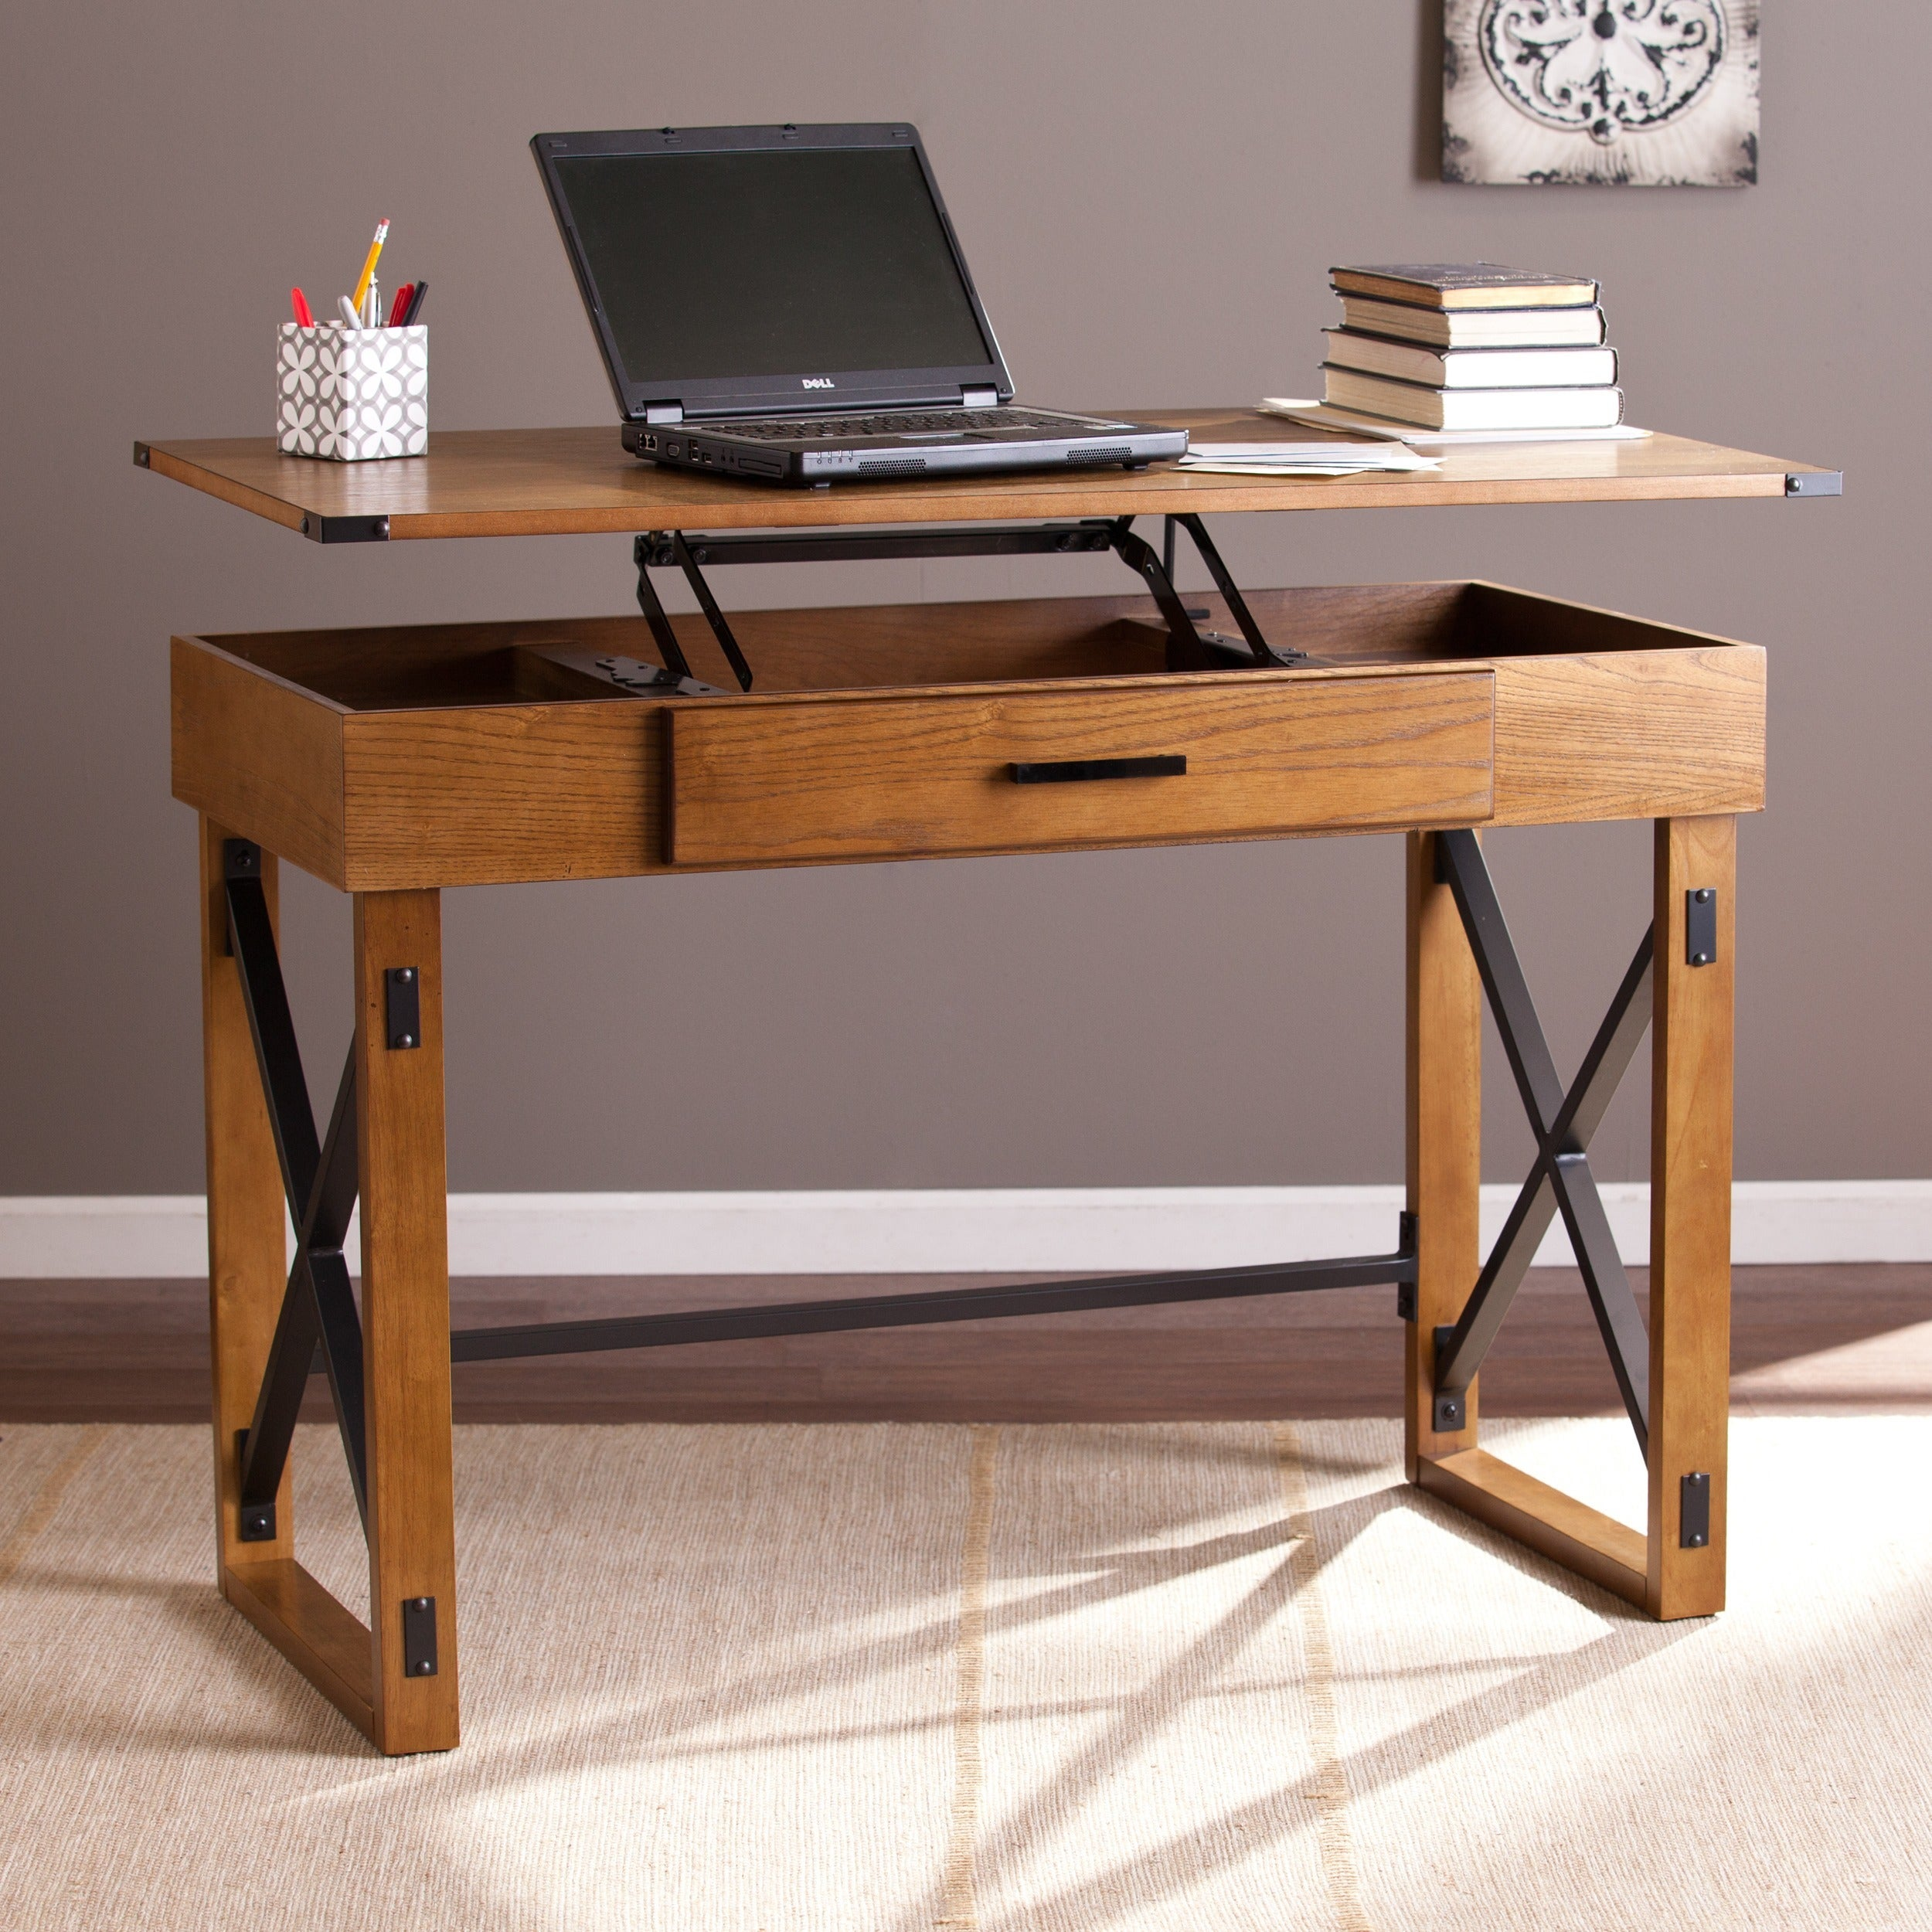 Harper Blvd Carlan Distressed Pine Adjustable Height Desk - Free Shipping  Today - Overstock.com - 18160896